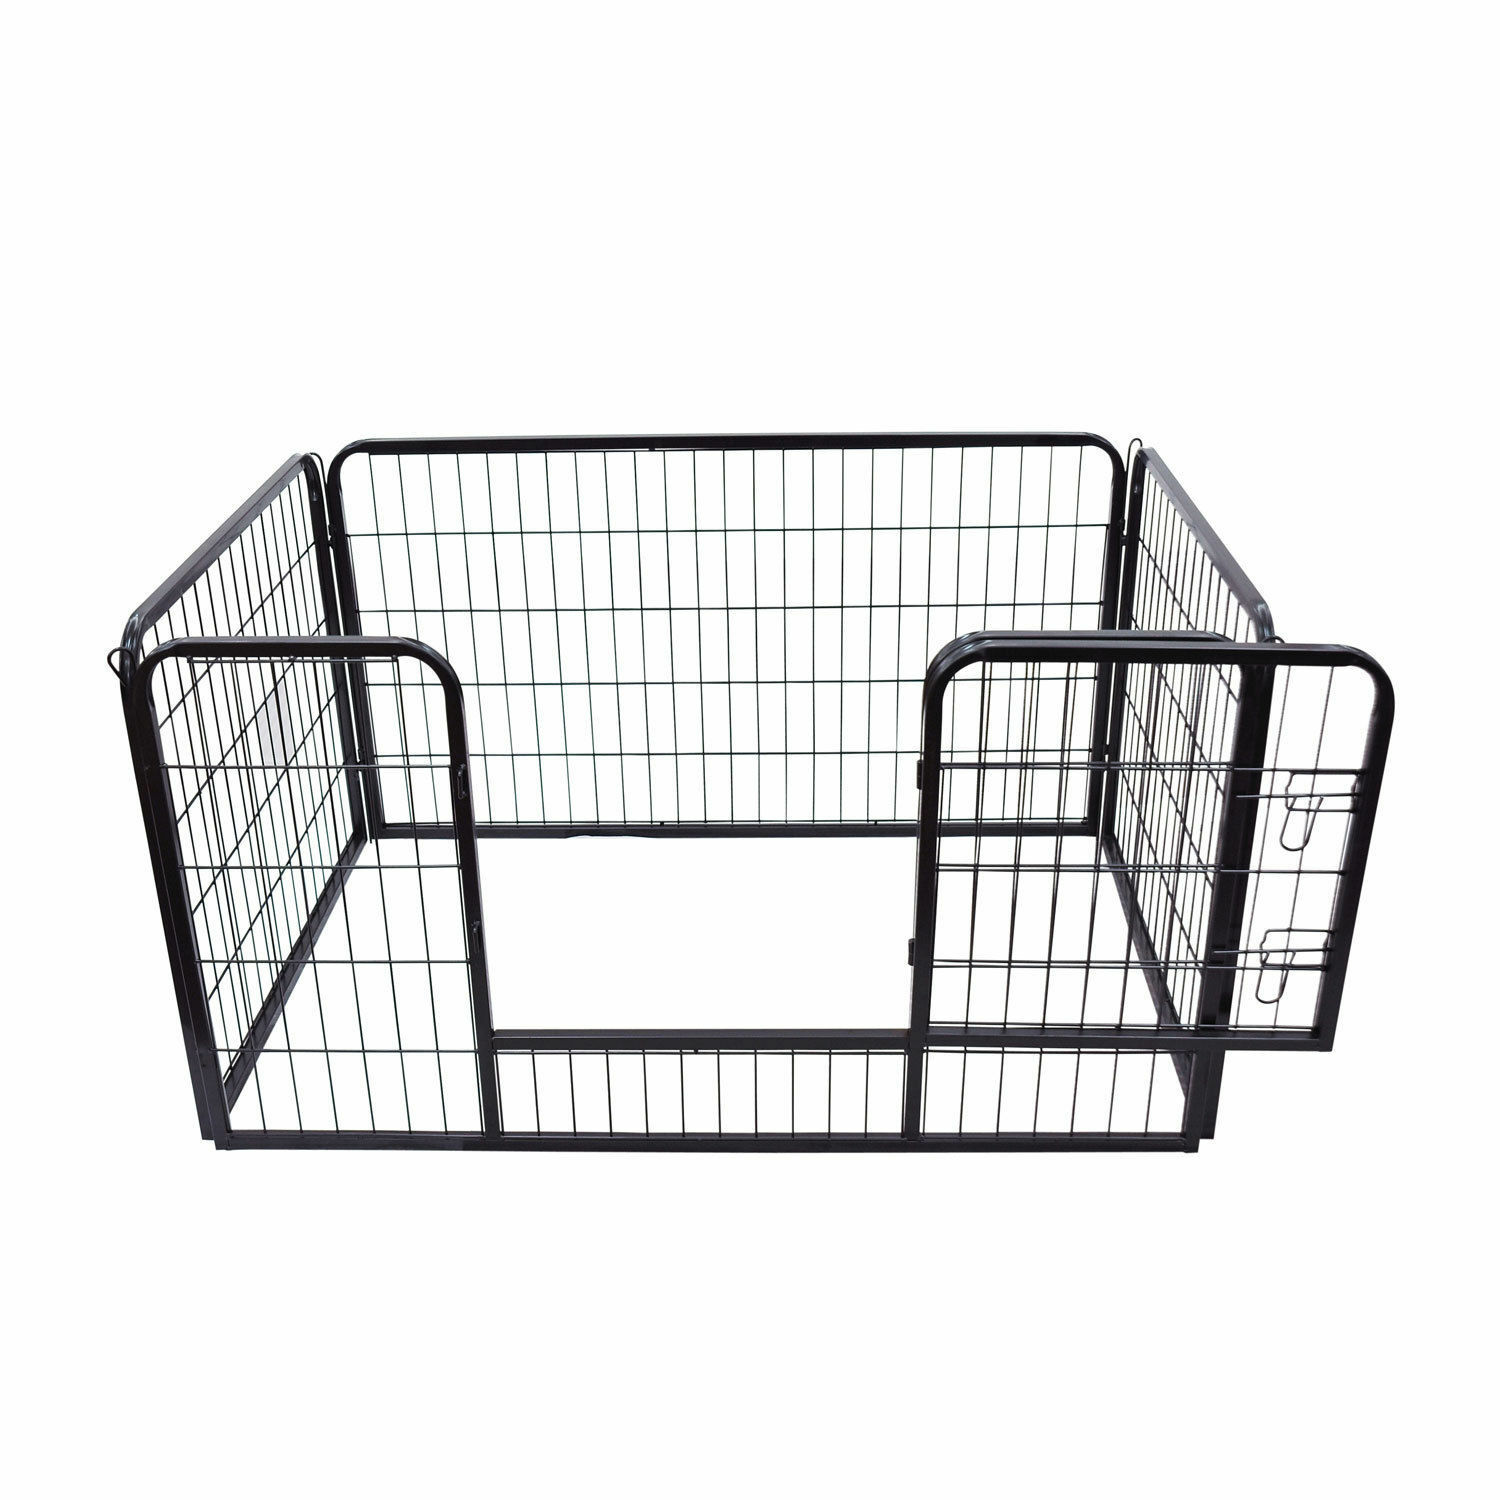 PawHut Pawhut Pet Rabbit Guinea Dog Pig Puppy Play Pen Metal Hutch Cage 125cm